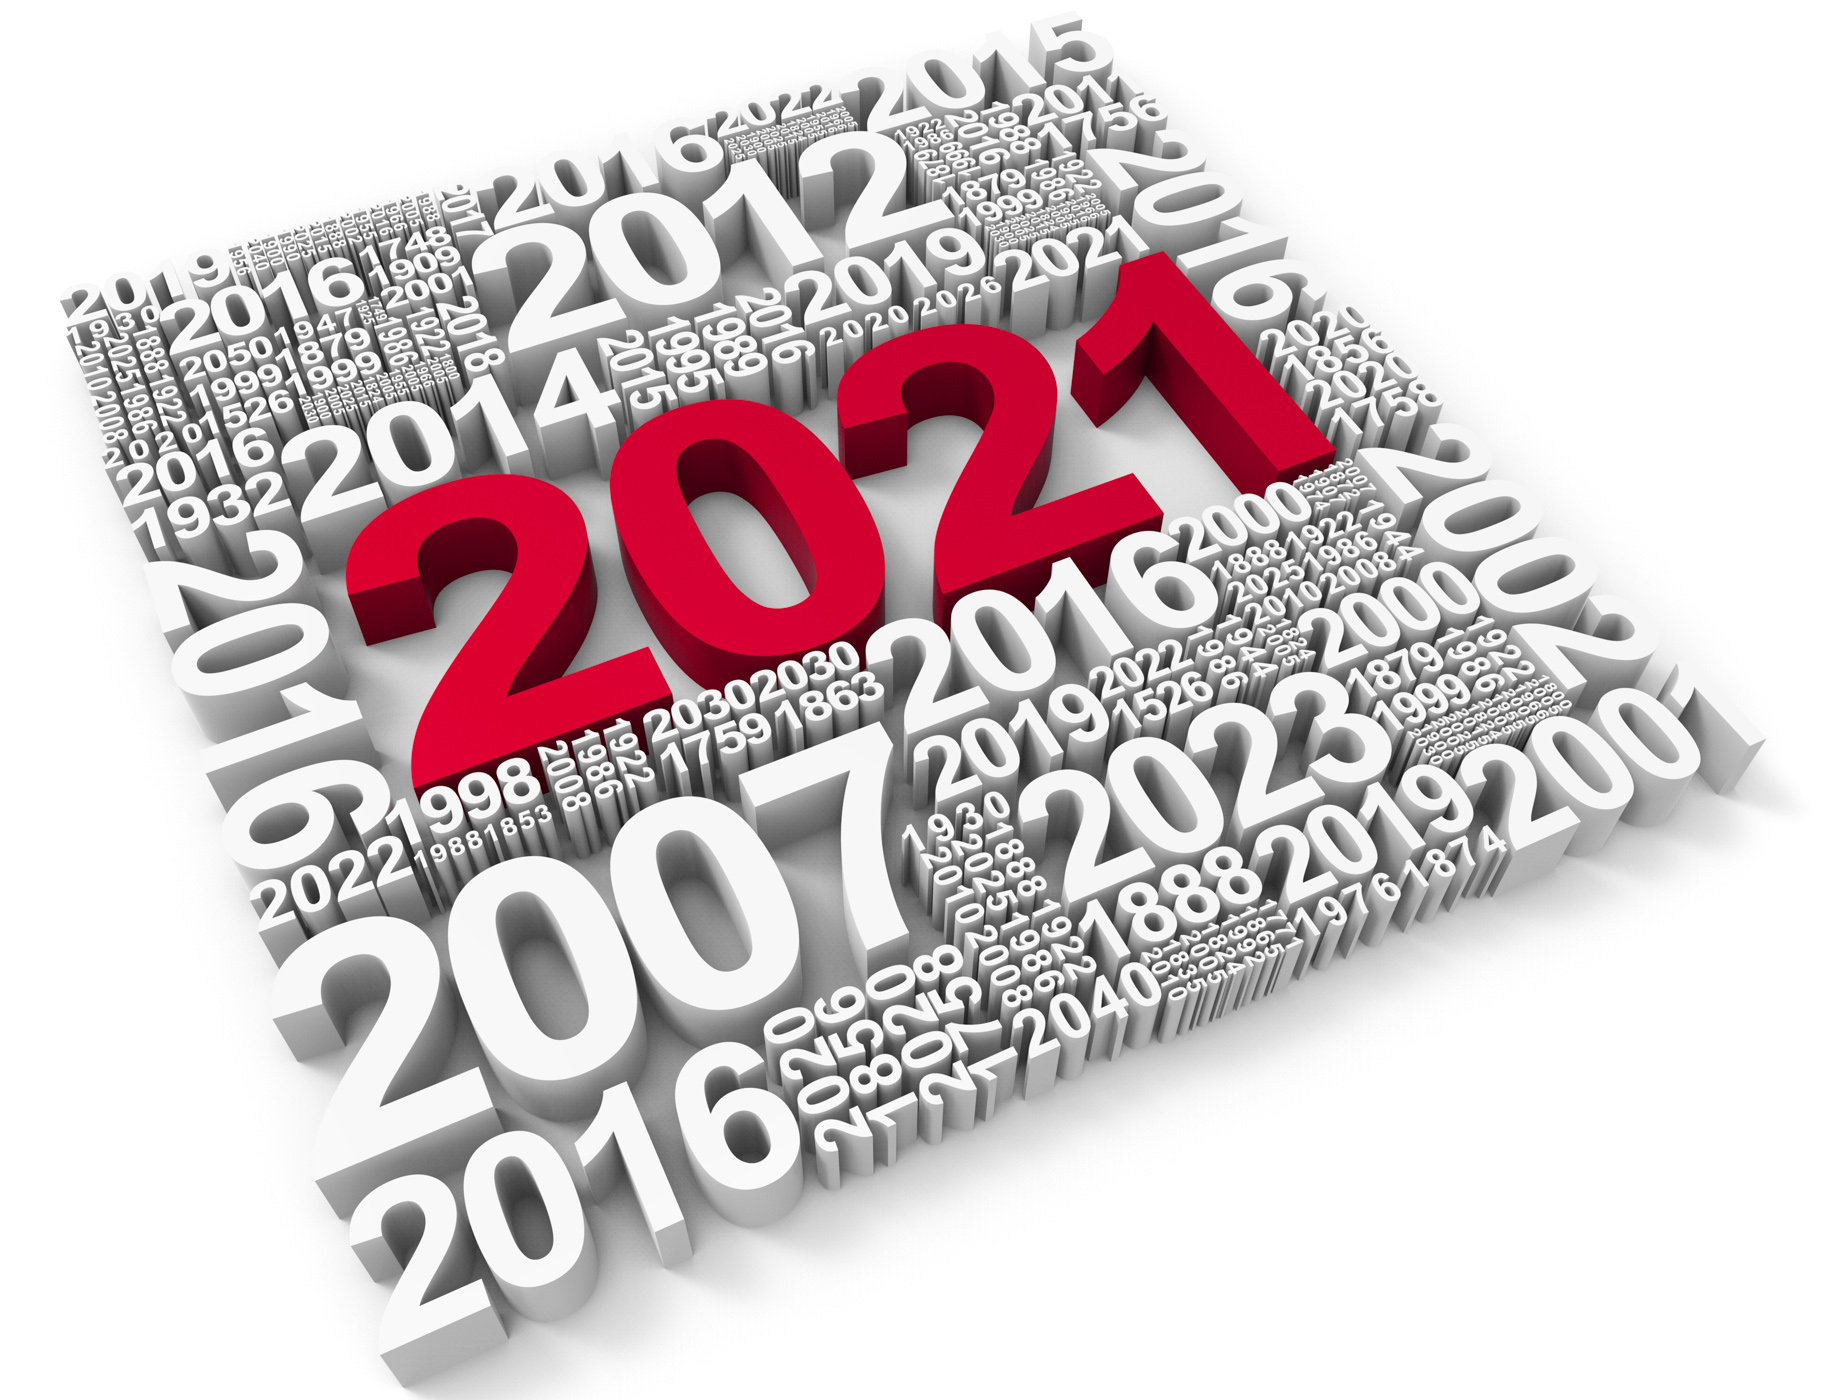 Two thousand twenty-one means happy new year and annual 3d rendering photo